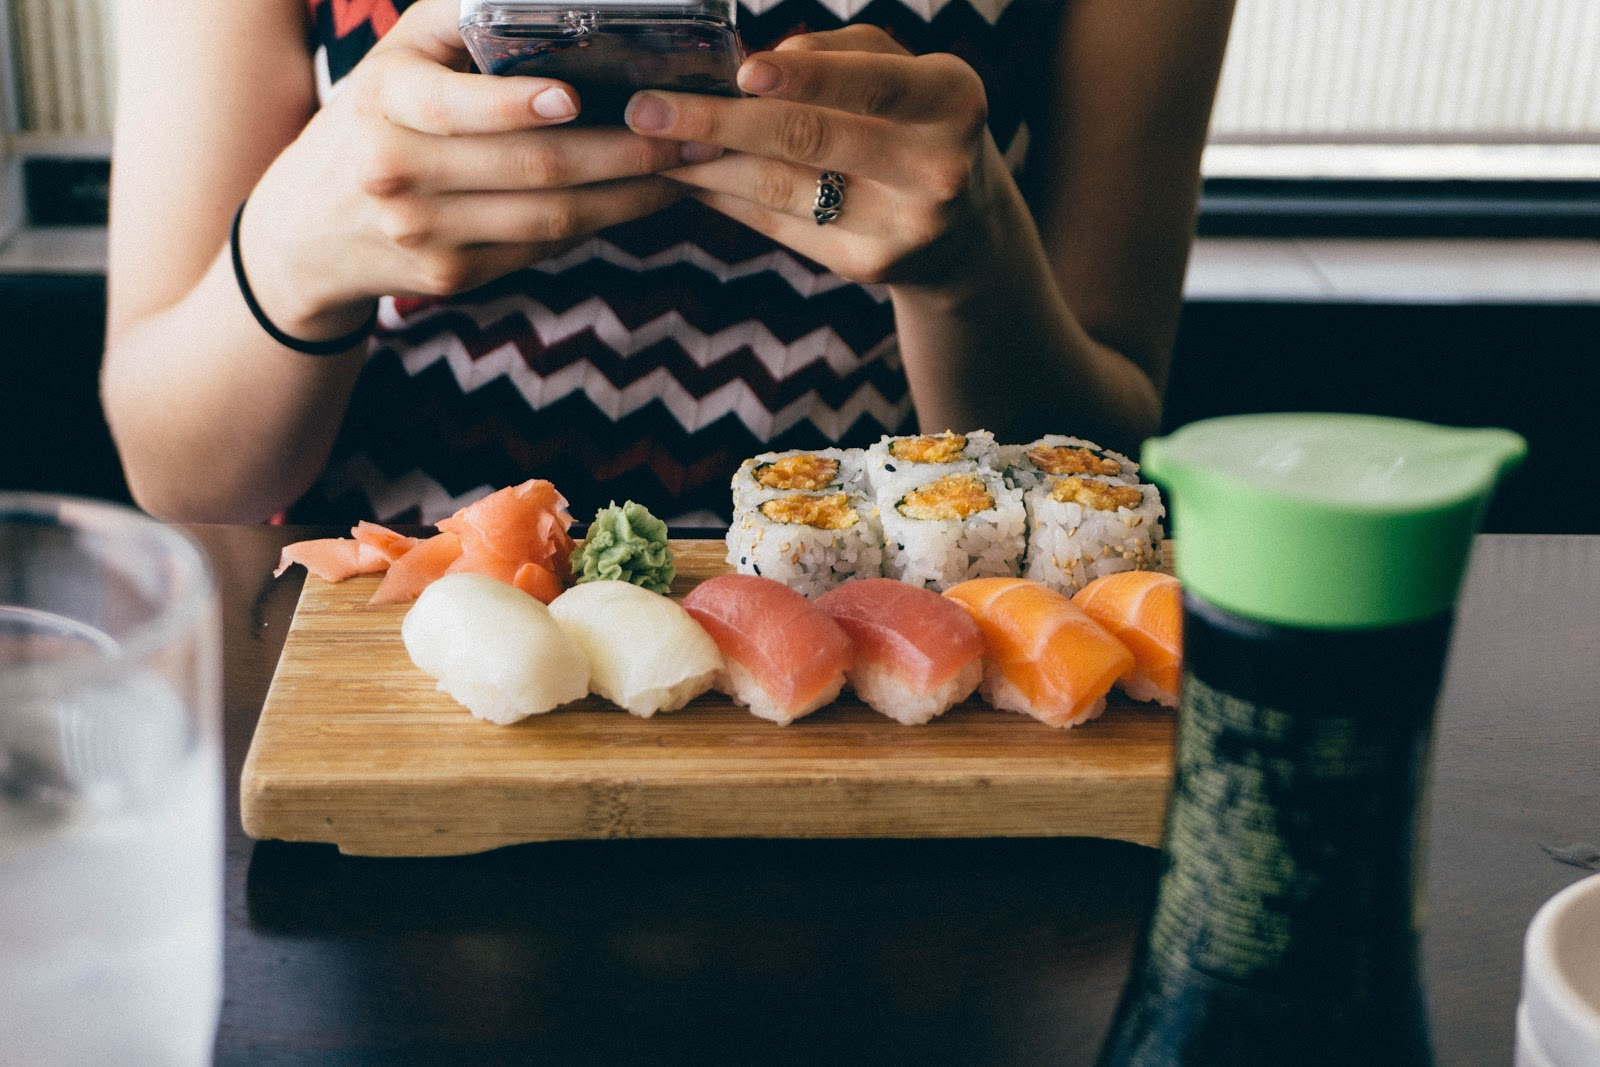 Restaurant customer eating sushi